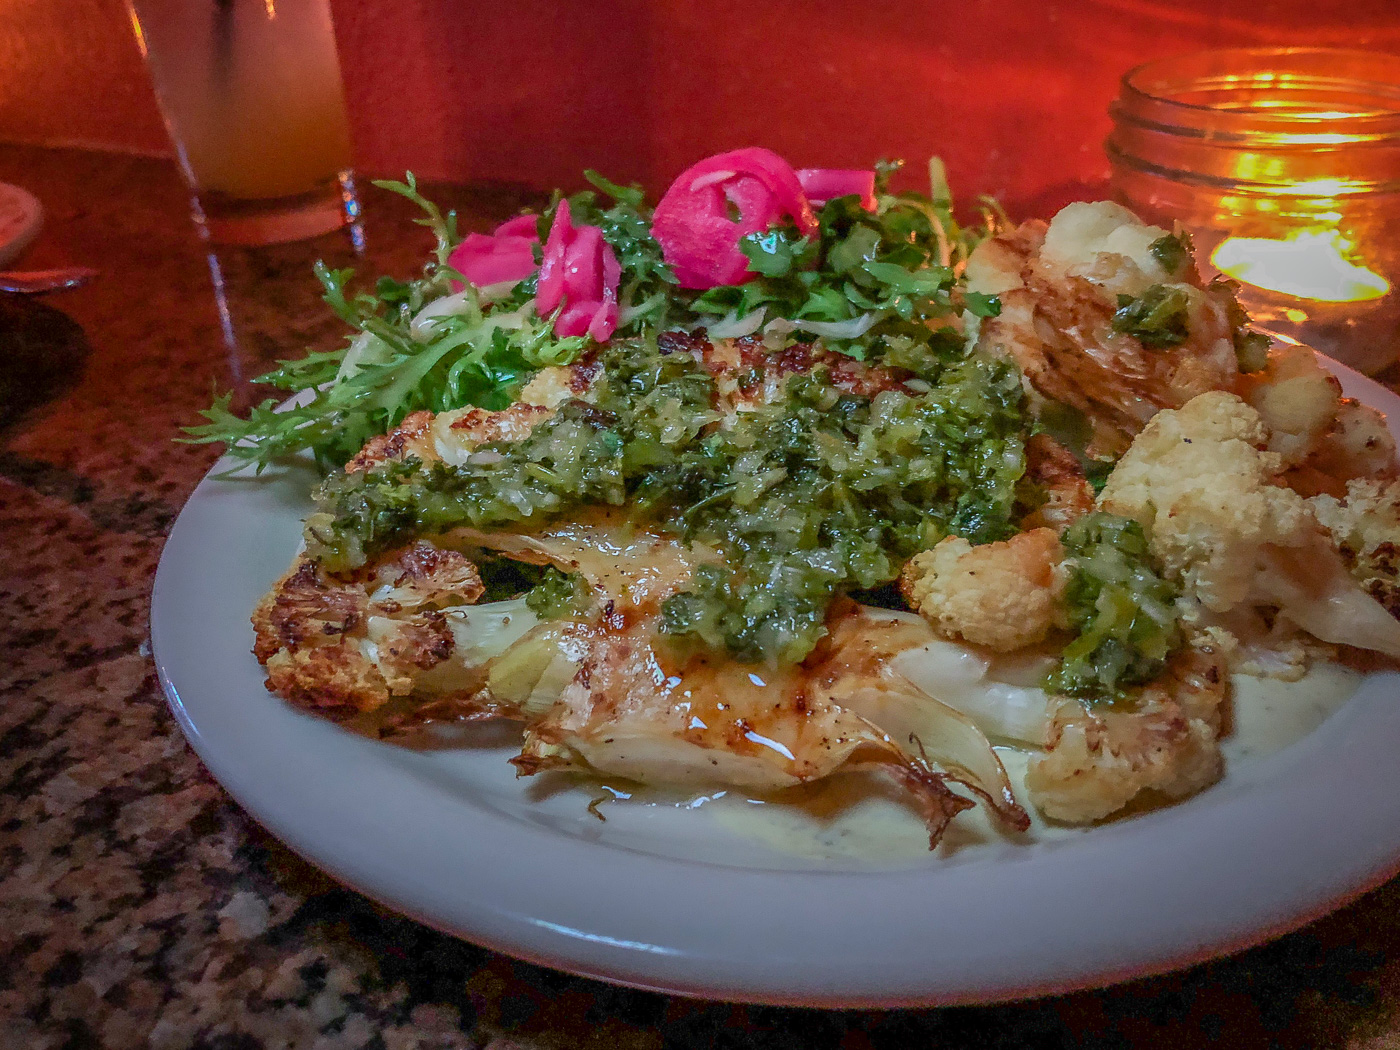 Thick slice of roasted cauliflower on a plate topped with green salsa and pickled onions